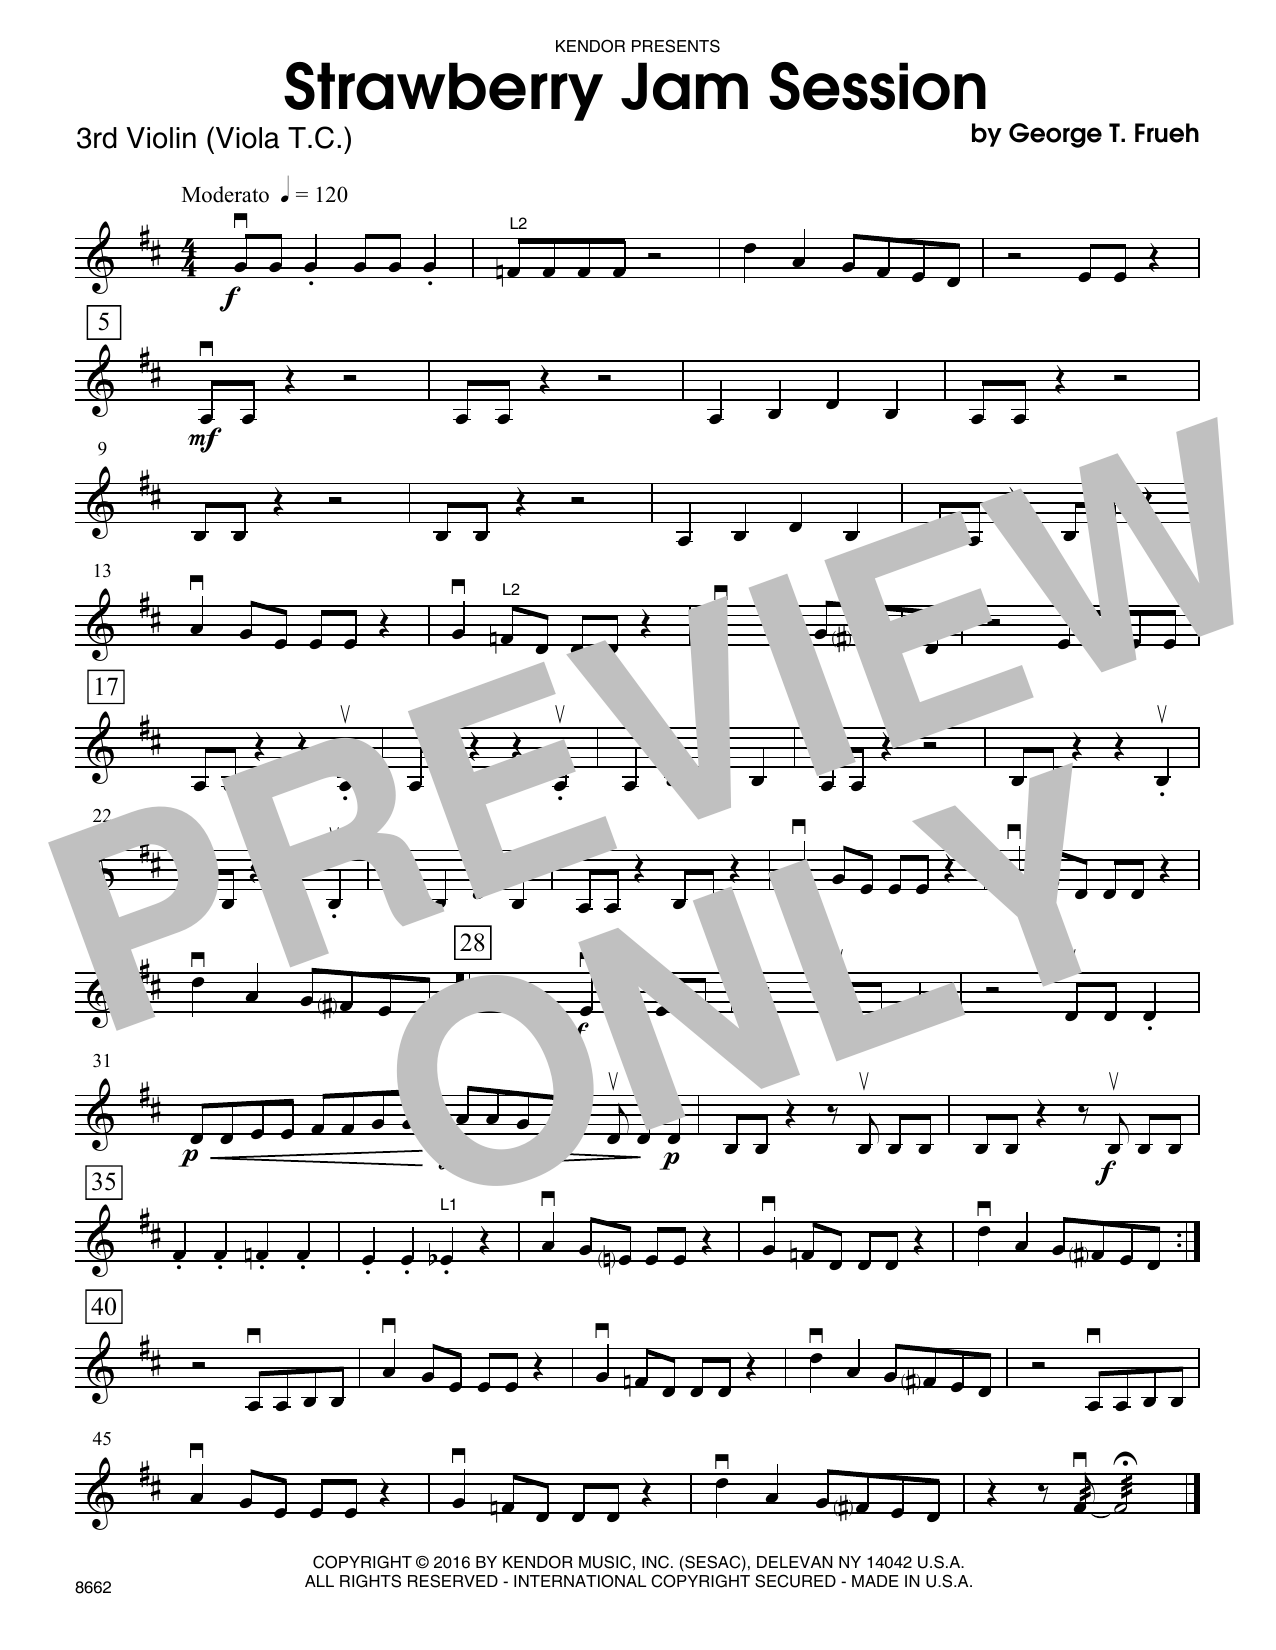 Strawberry Jam Session - Violin 3 (Viola T.C.) Sheet Music